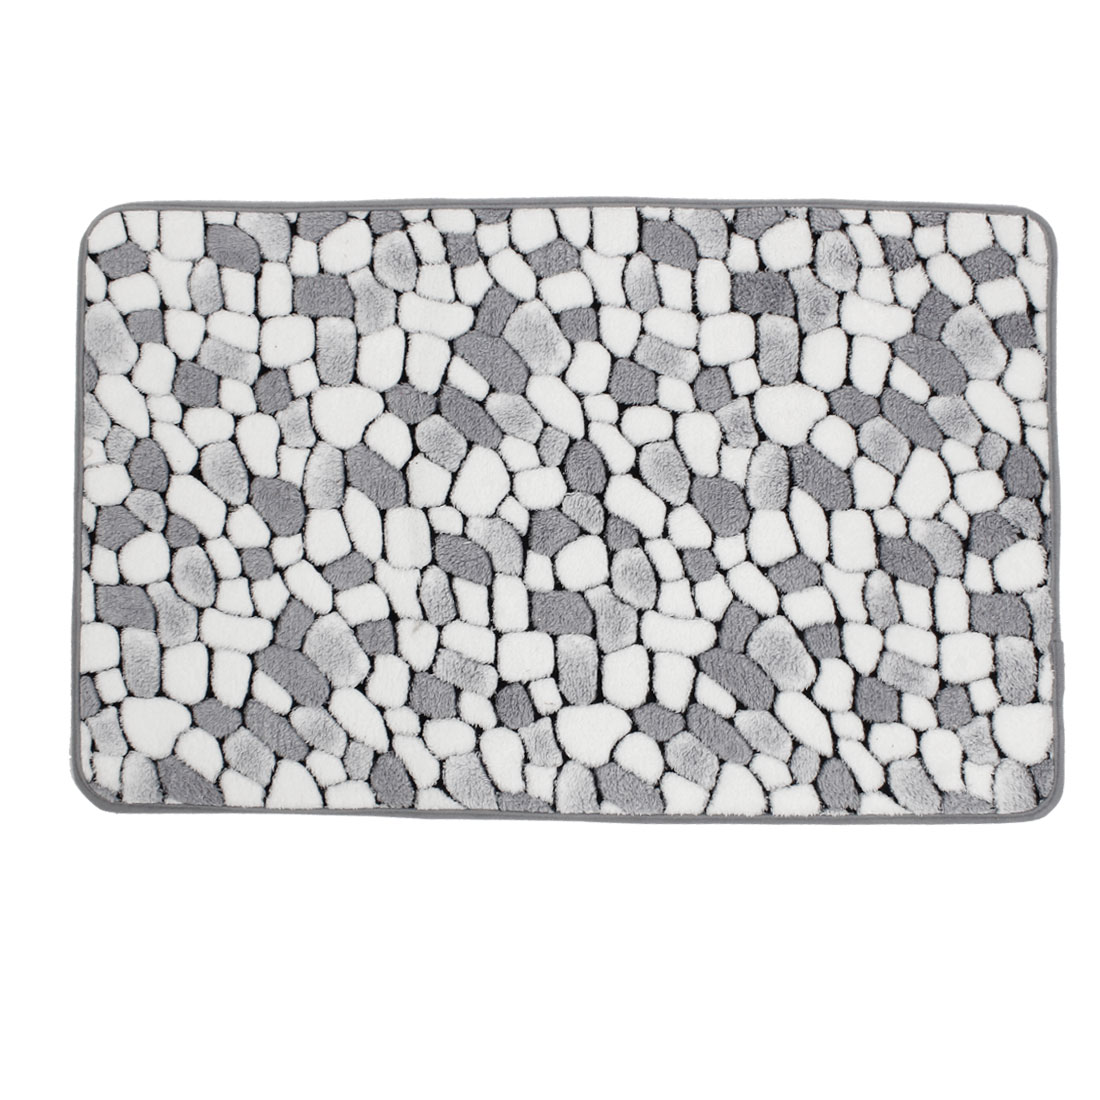 Bedroom White Gray Cobblestone Patetrn Nonslip Mat Area Rug Carpet 70cm x 45cm